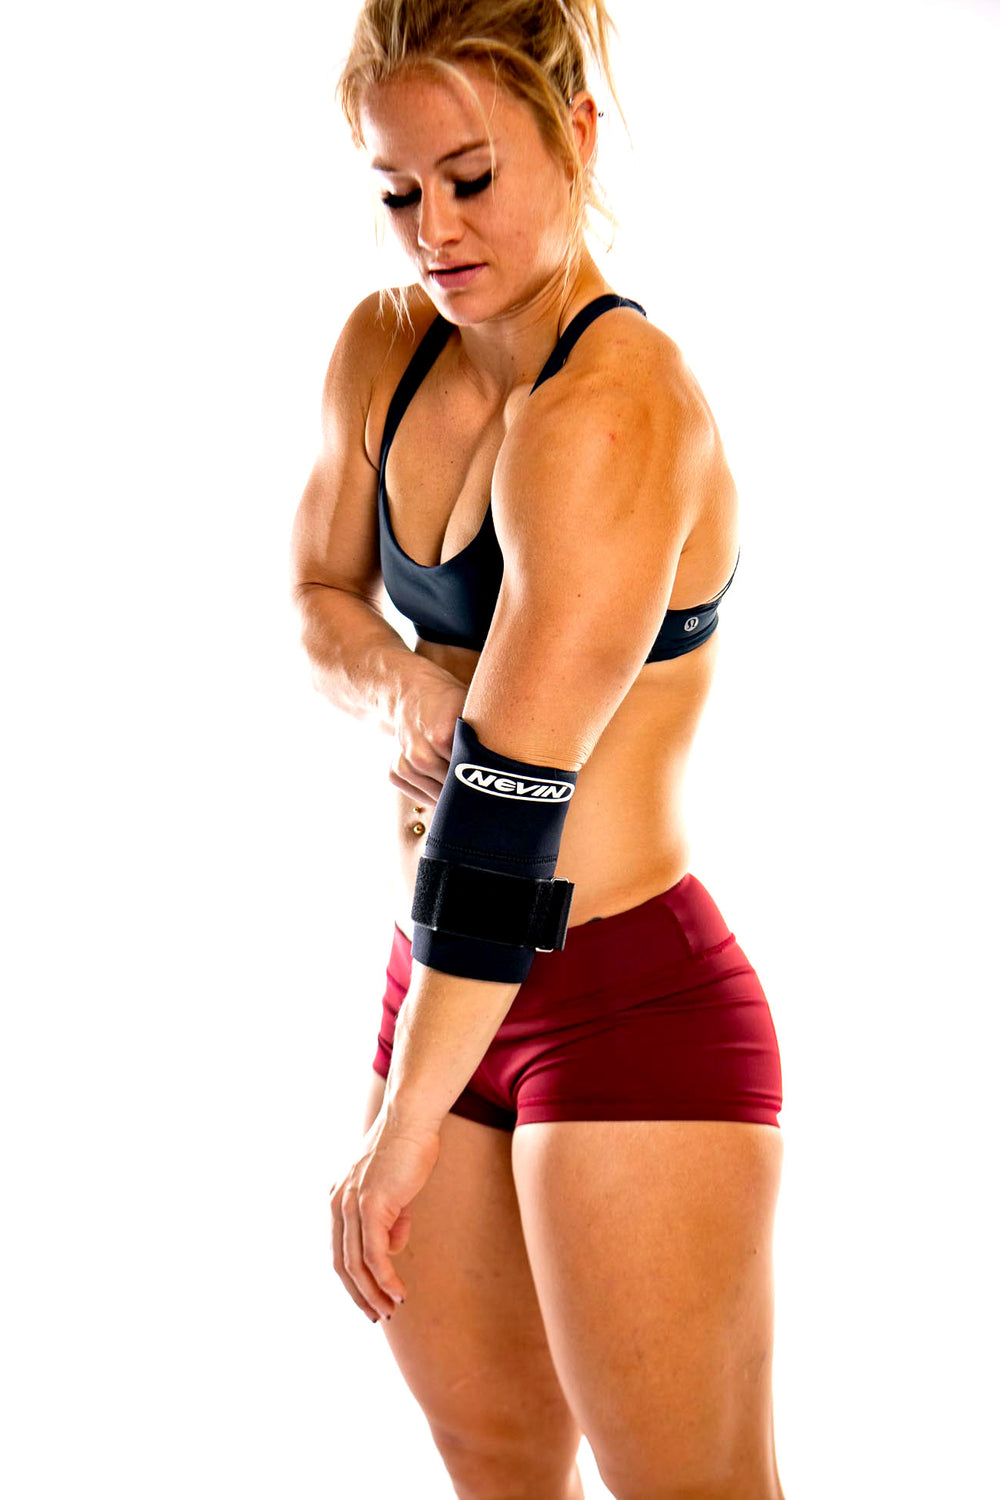 athlete putting on contoured elbow support